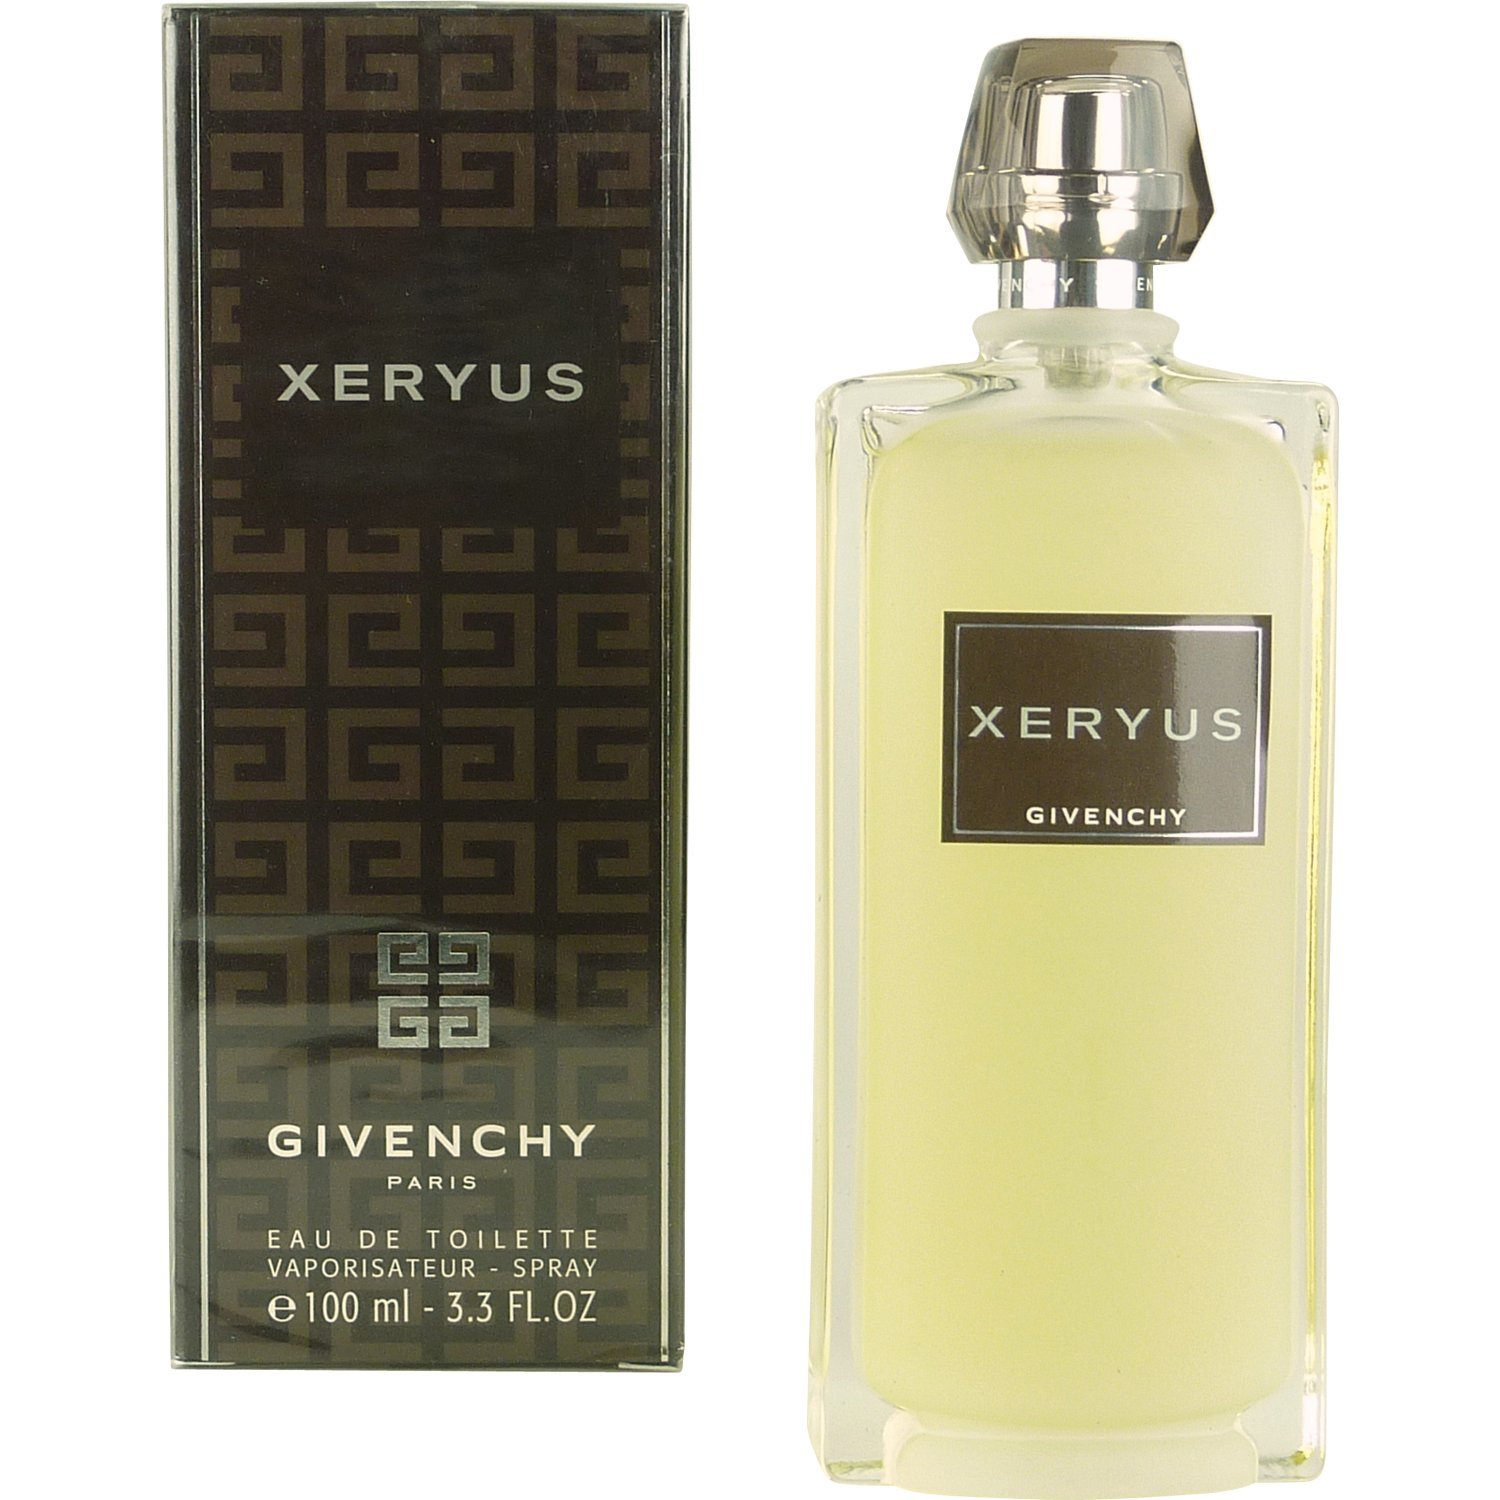 XERYUS MYTHICAL cologne by Givenchy MEN'S EDT SPRAY 3.3 OZ (2007 EDITION)